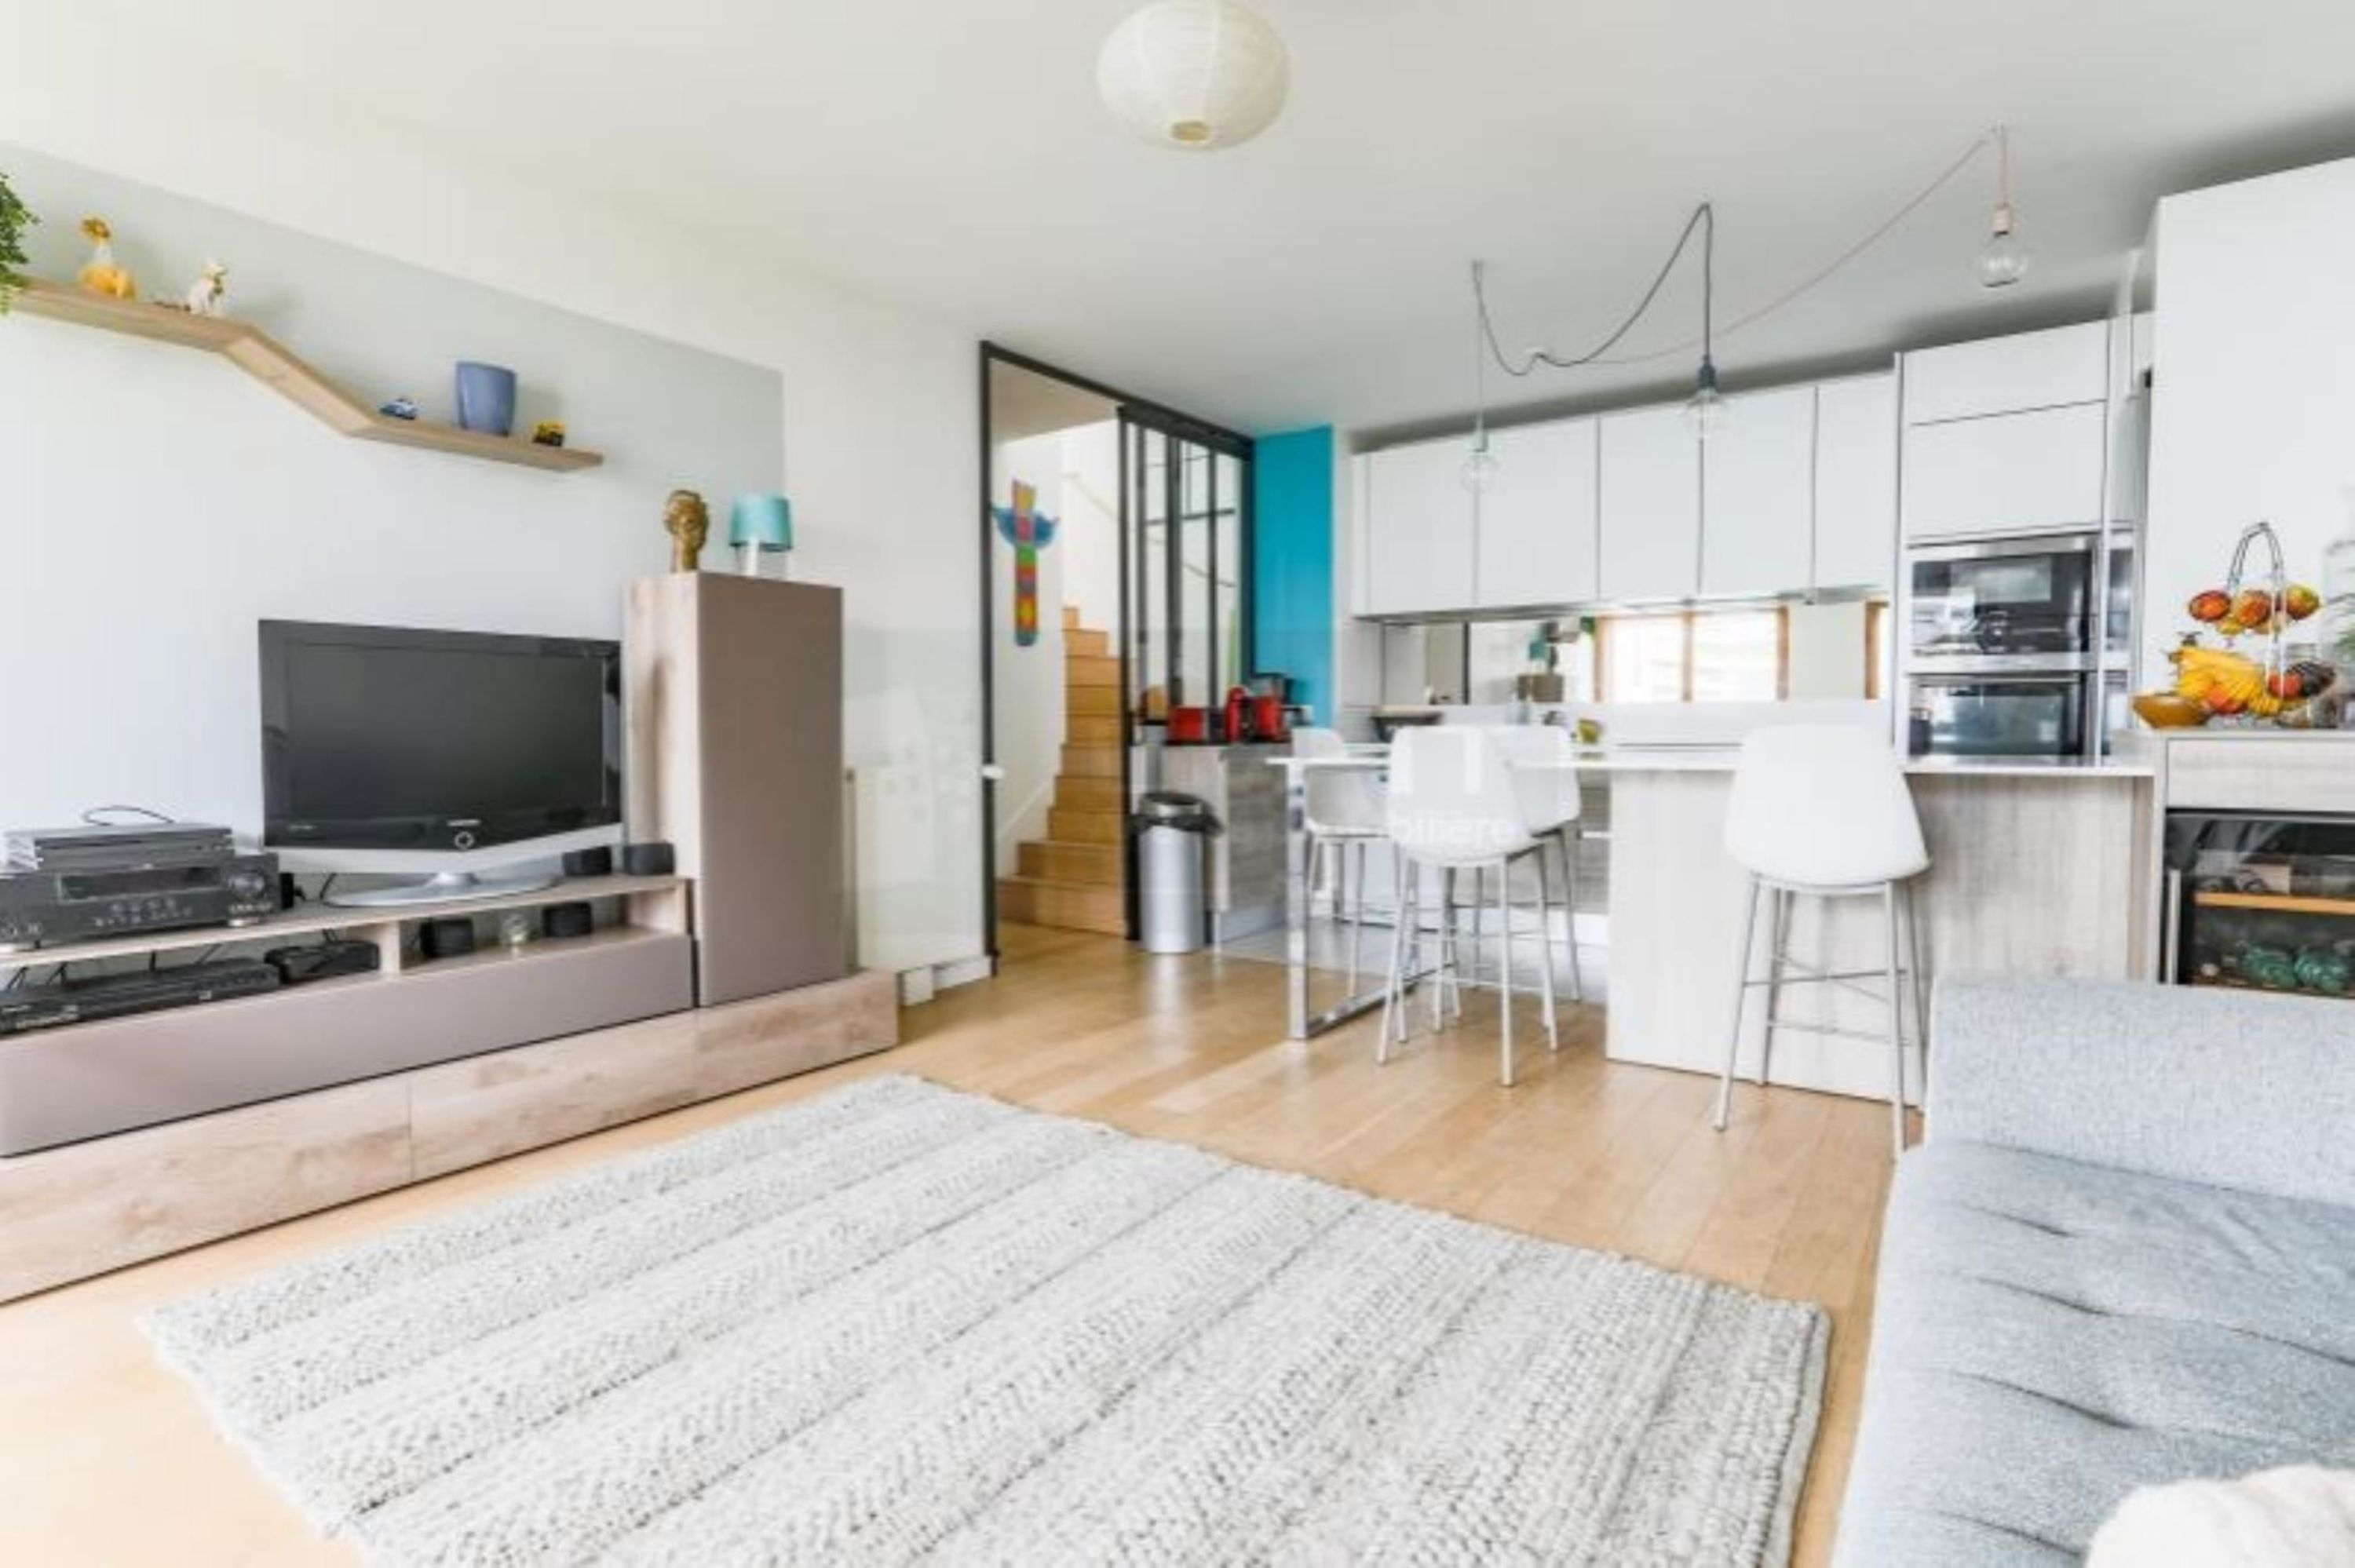 agence immobilière sevres 92 le chesnay 78 achat vente location appartement maison immobilier LMHT ANF PUMMJZSF